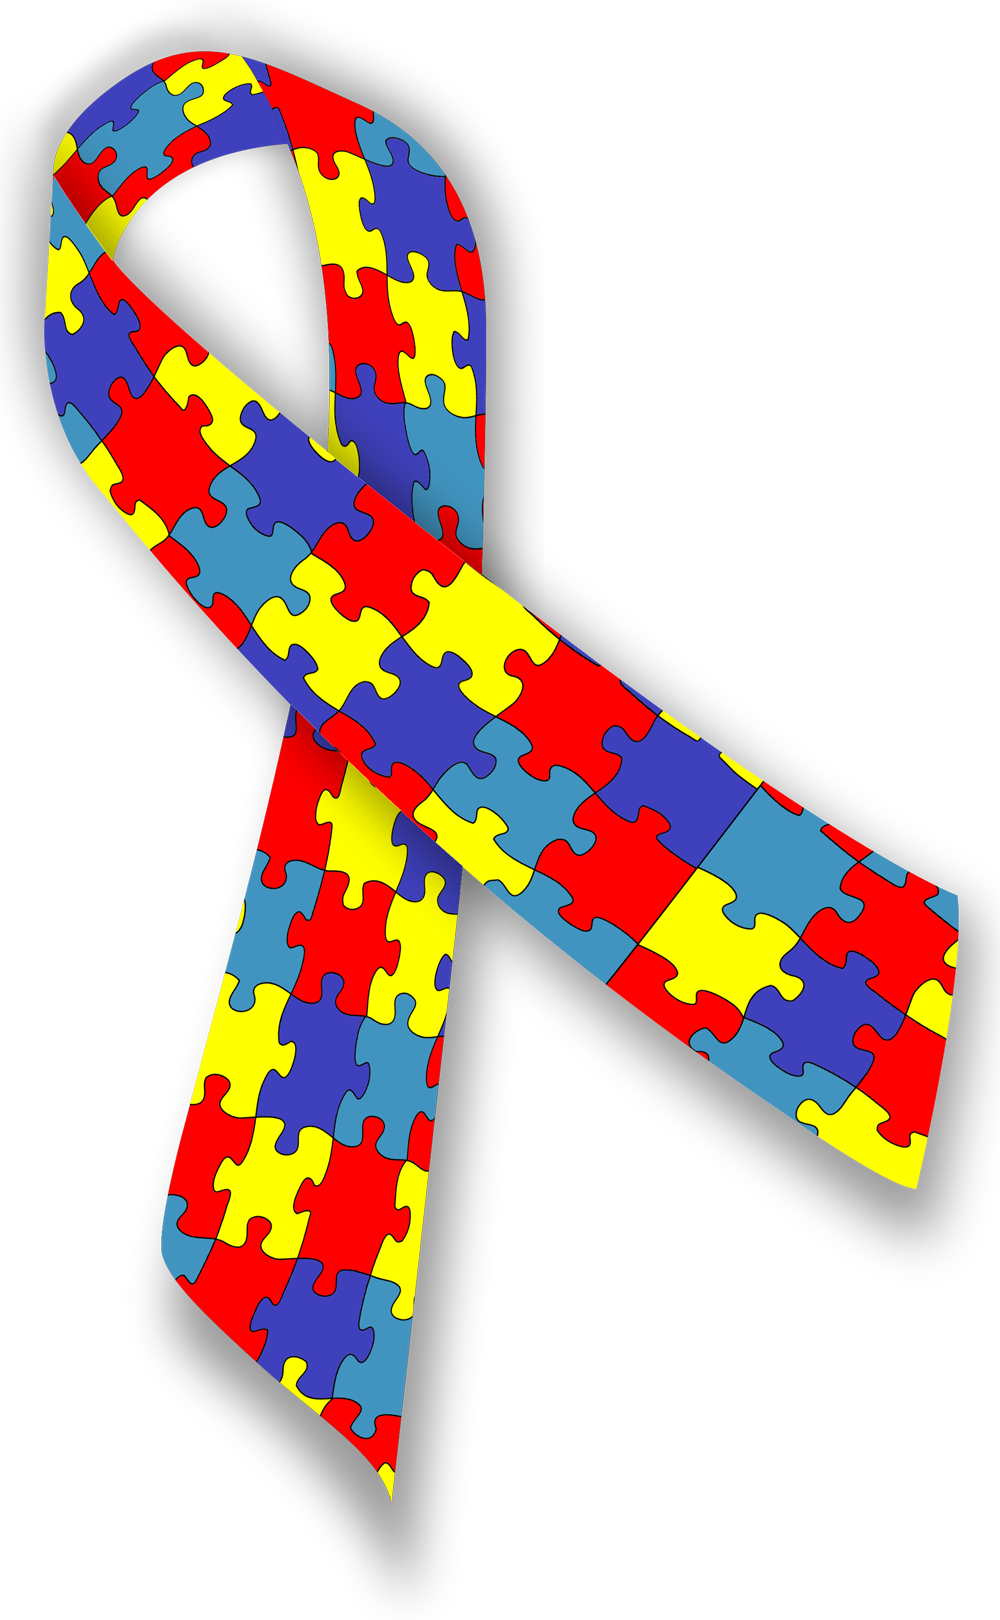 Autism ribbon clip art graphic download Autism Awareness: The Autism Puzzle Piece Meaning | Pinterest ... graphic download